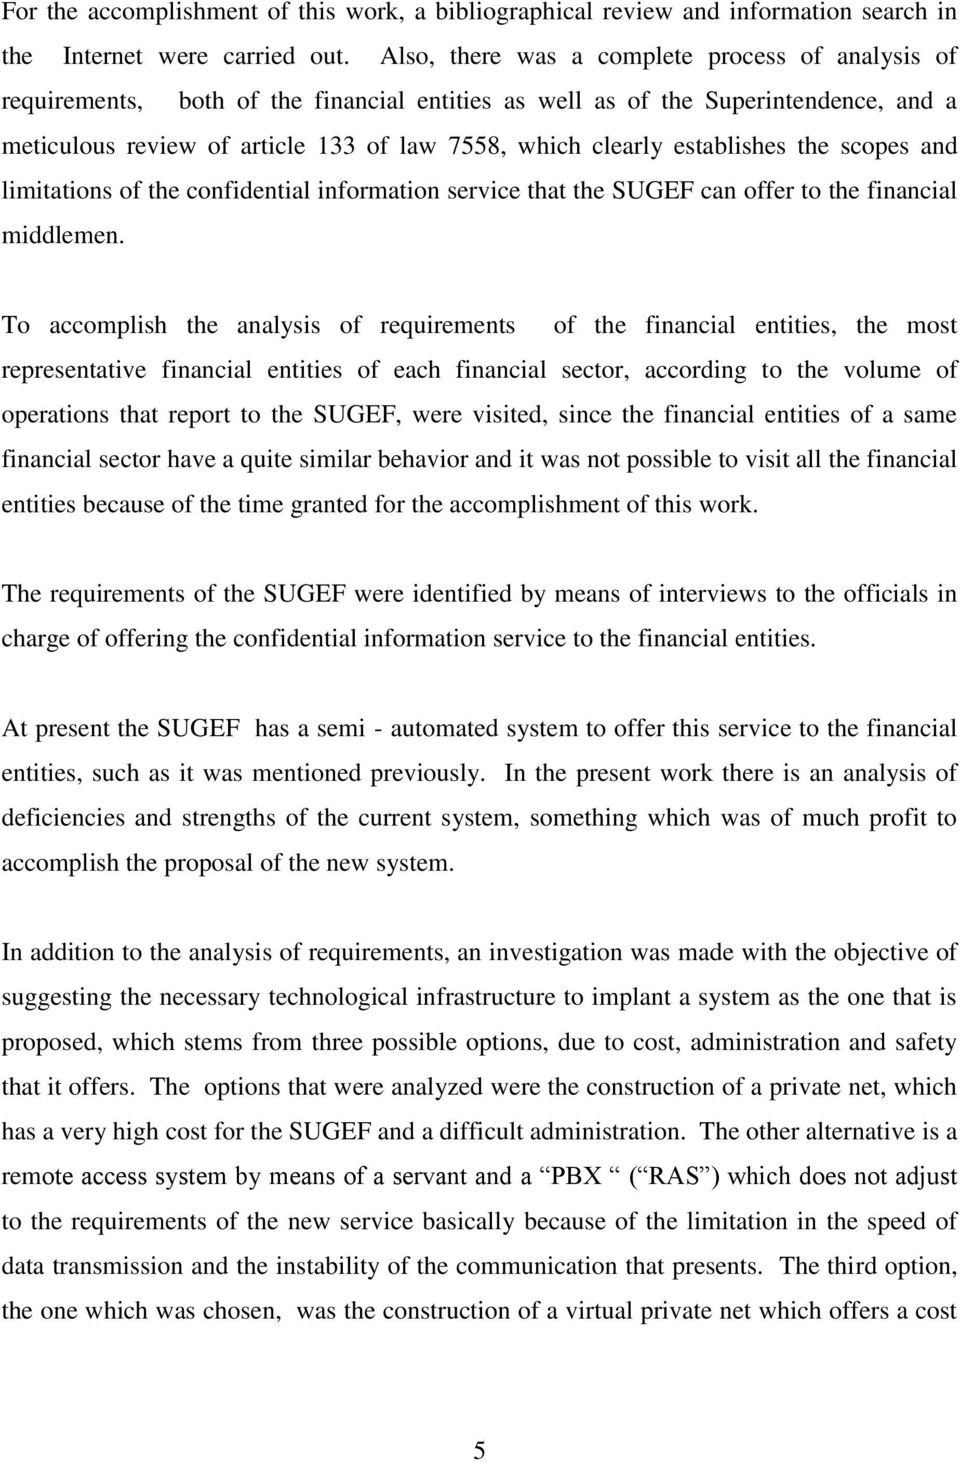 establishes the scopes and limitations of the confidential information service that the SUGEF can offer to the financial middlemen.